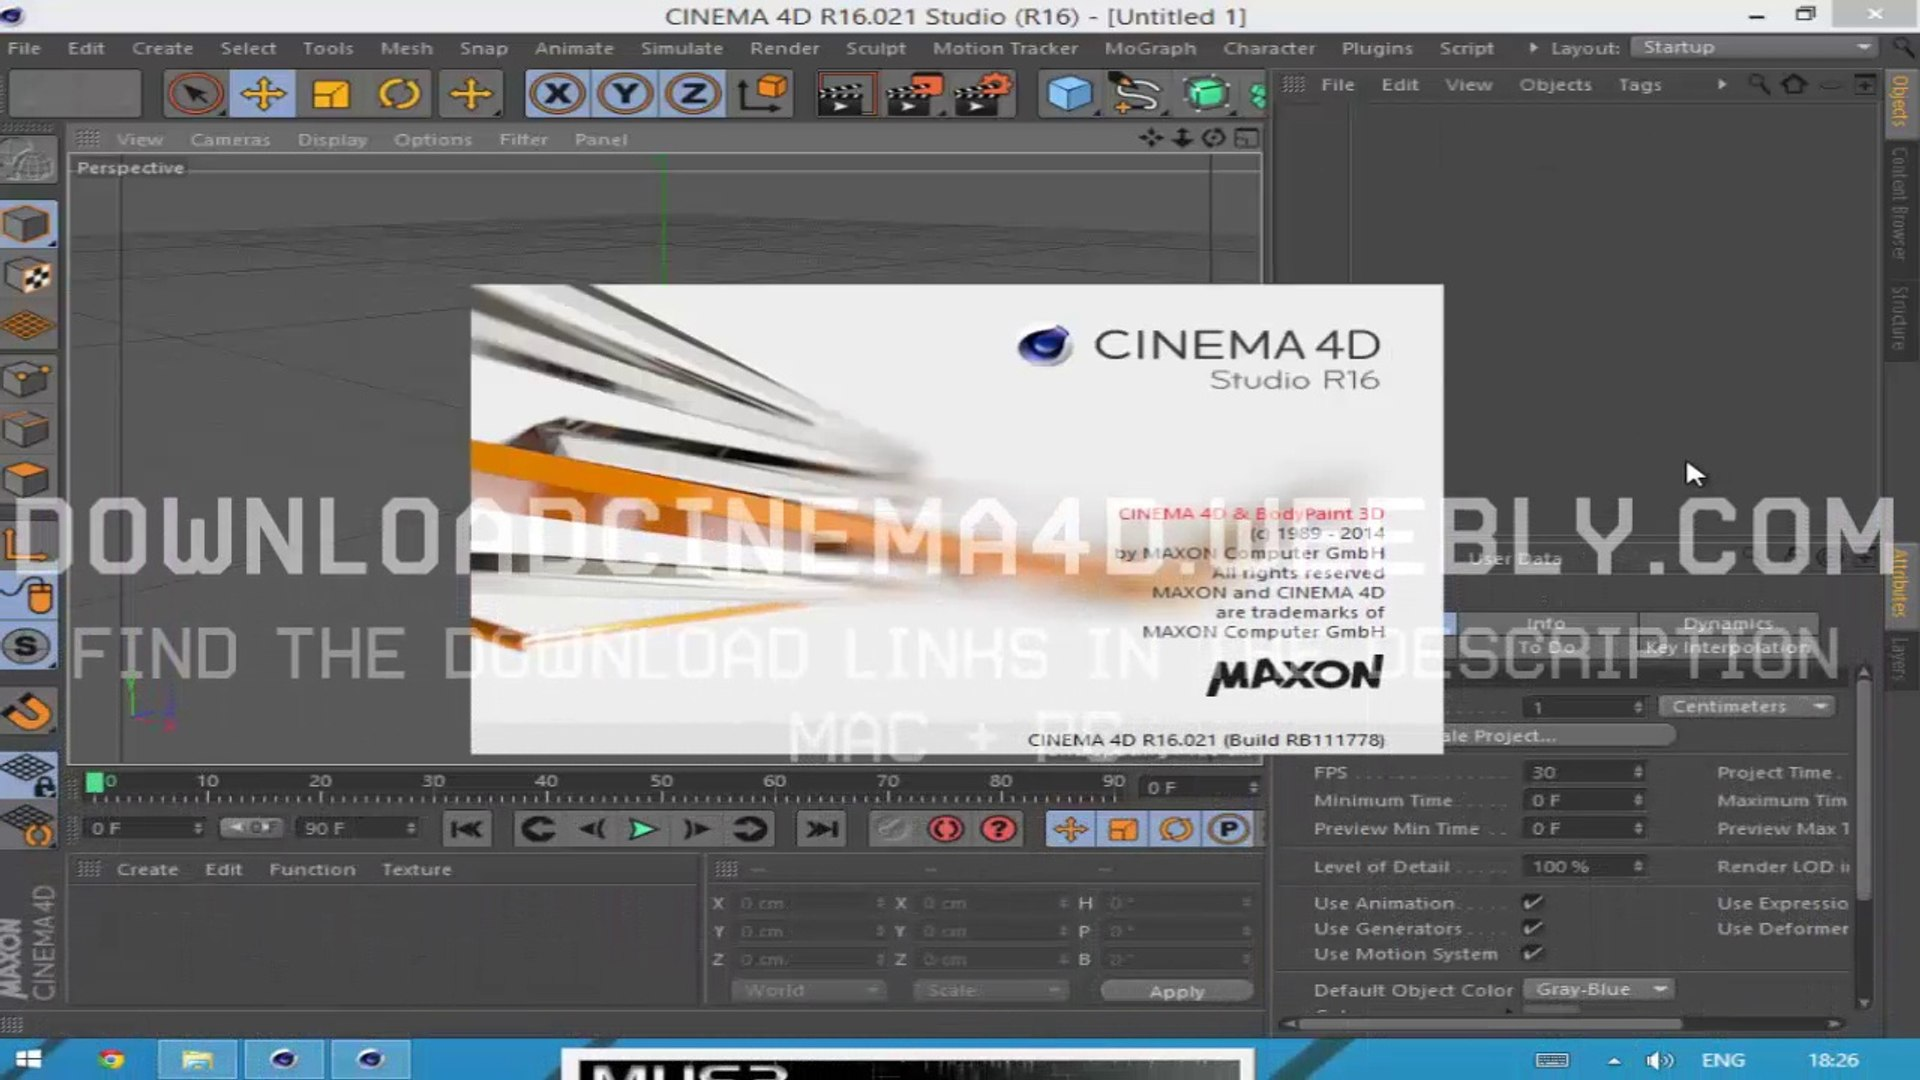 Cinema 4D R16 FREE Download ☼ Mac Win